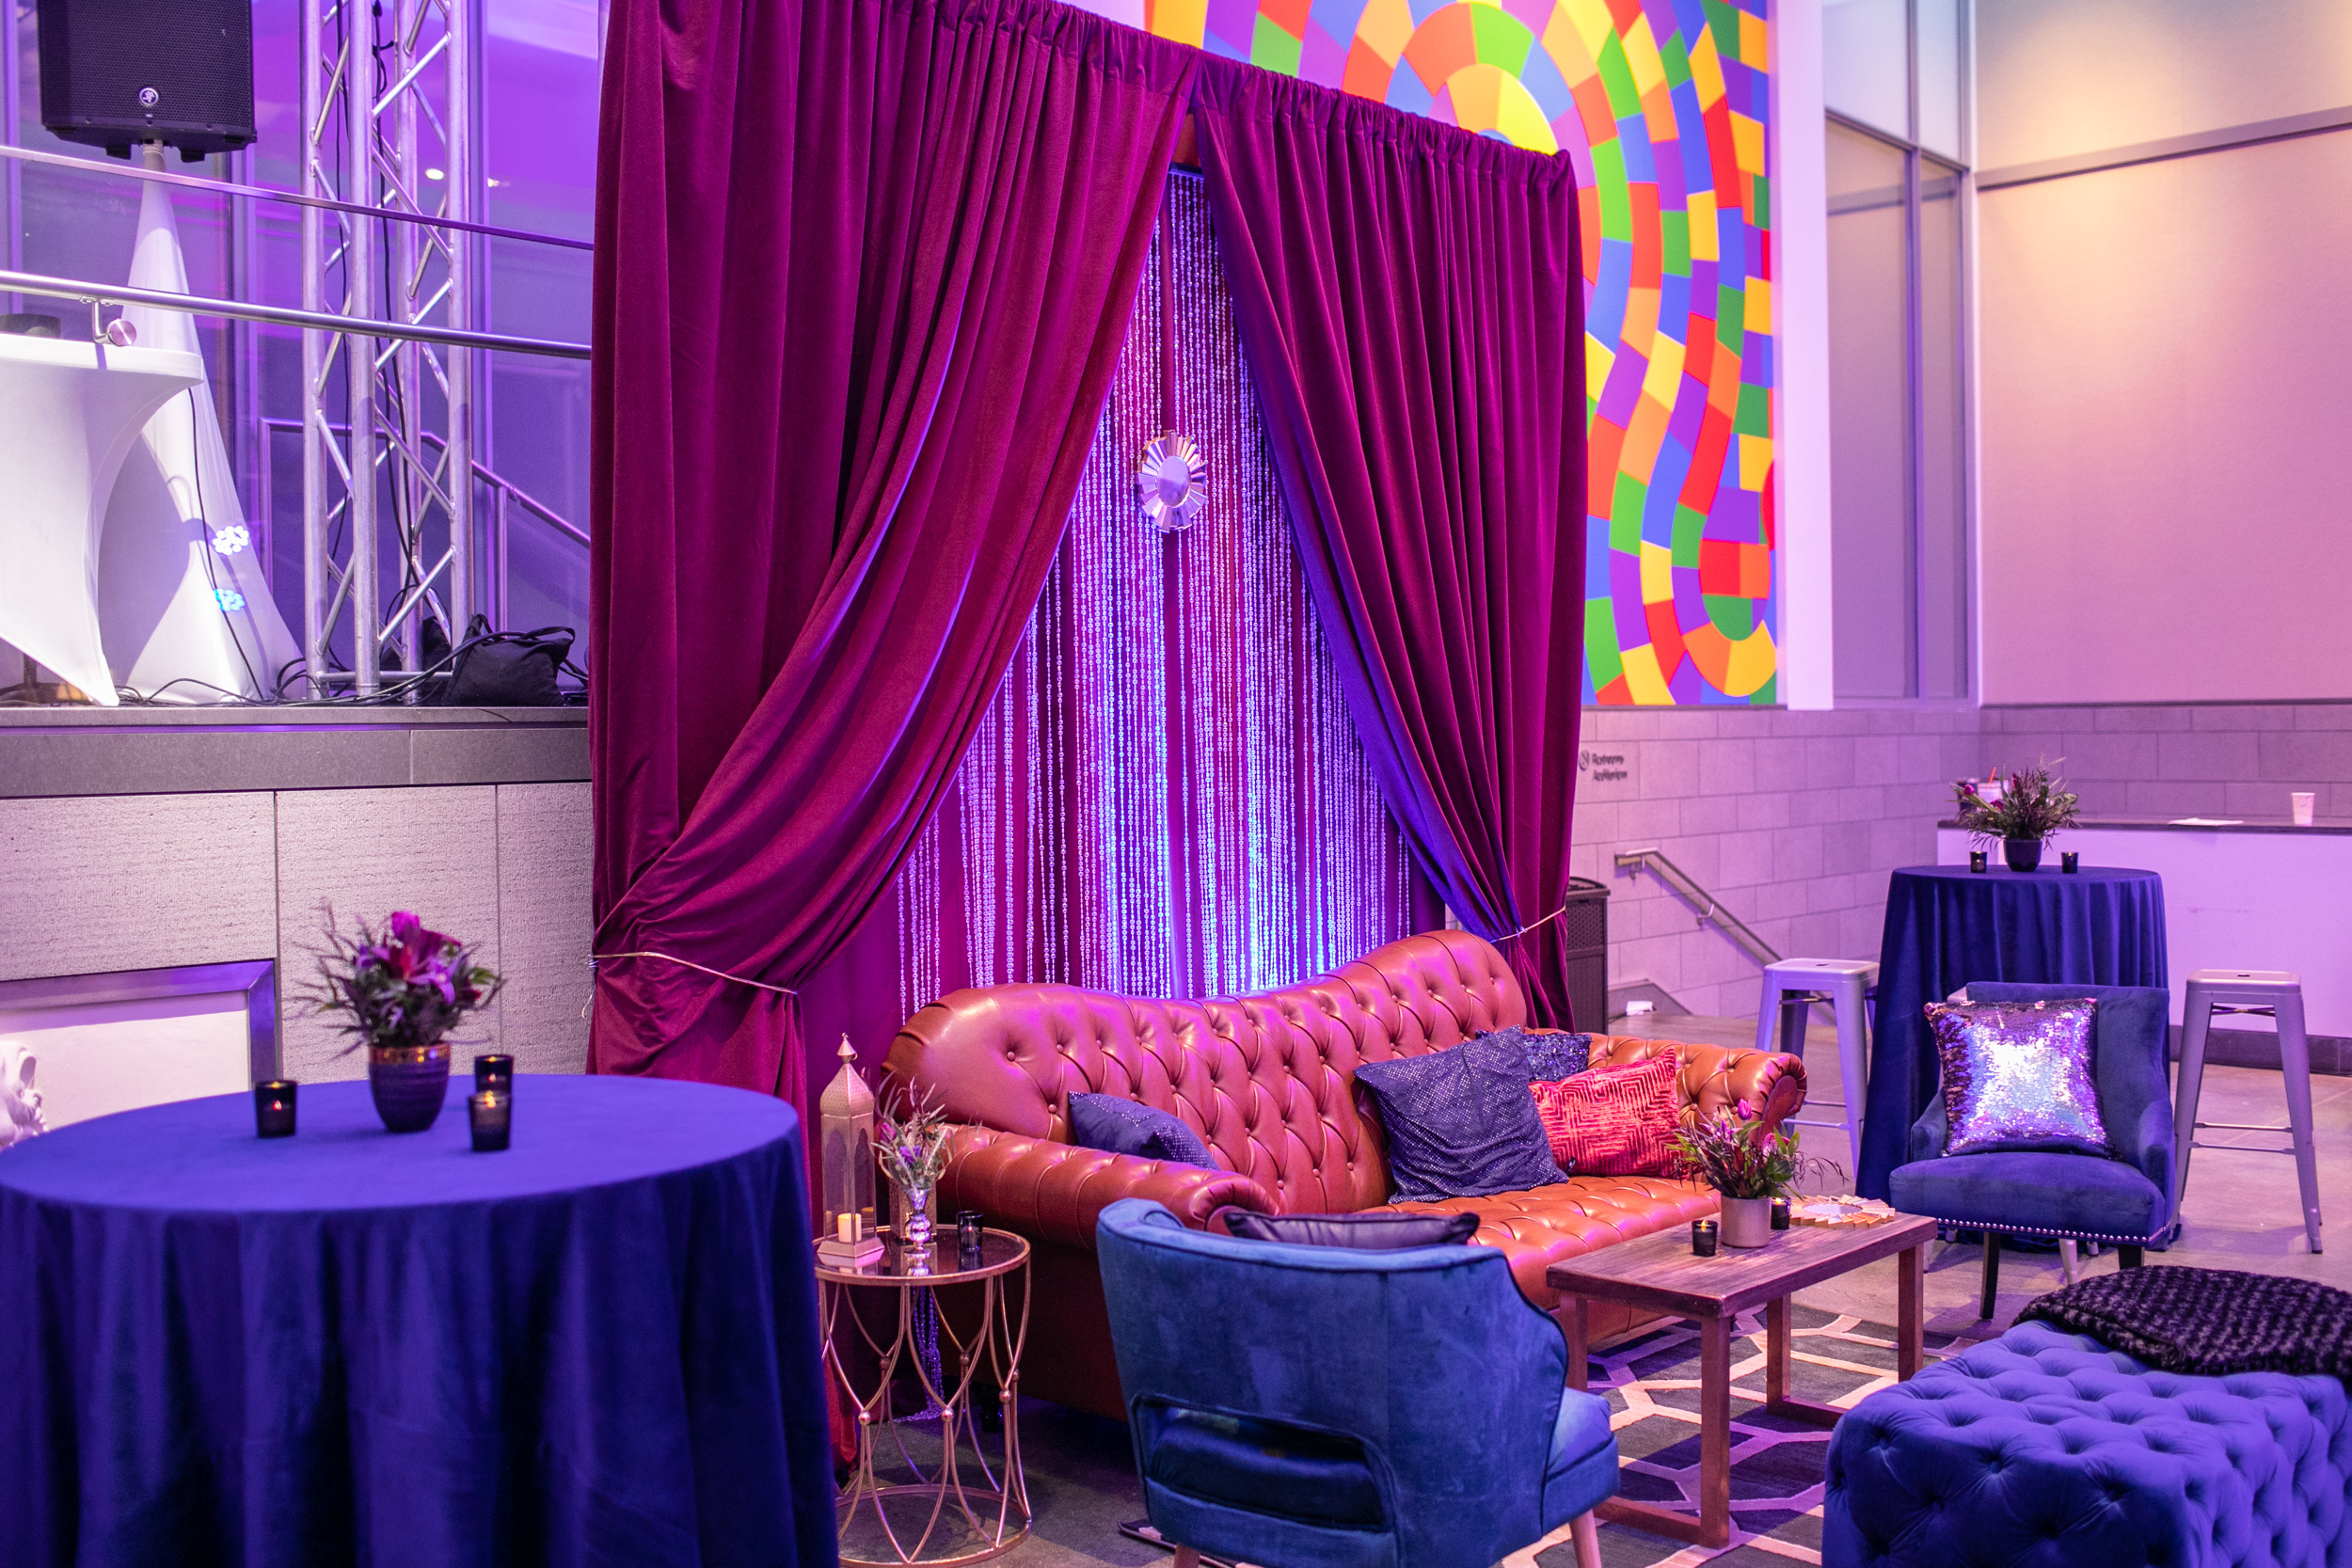 Masquerade_Ball_Currier_Museum_Manchester_Malloy_Events_drape_backdrop_lighting